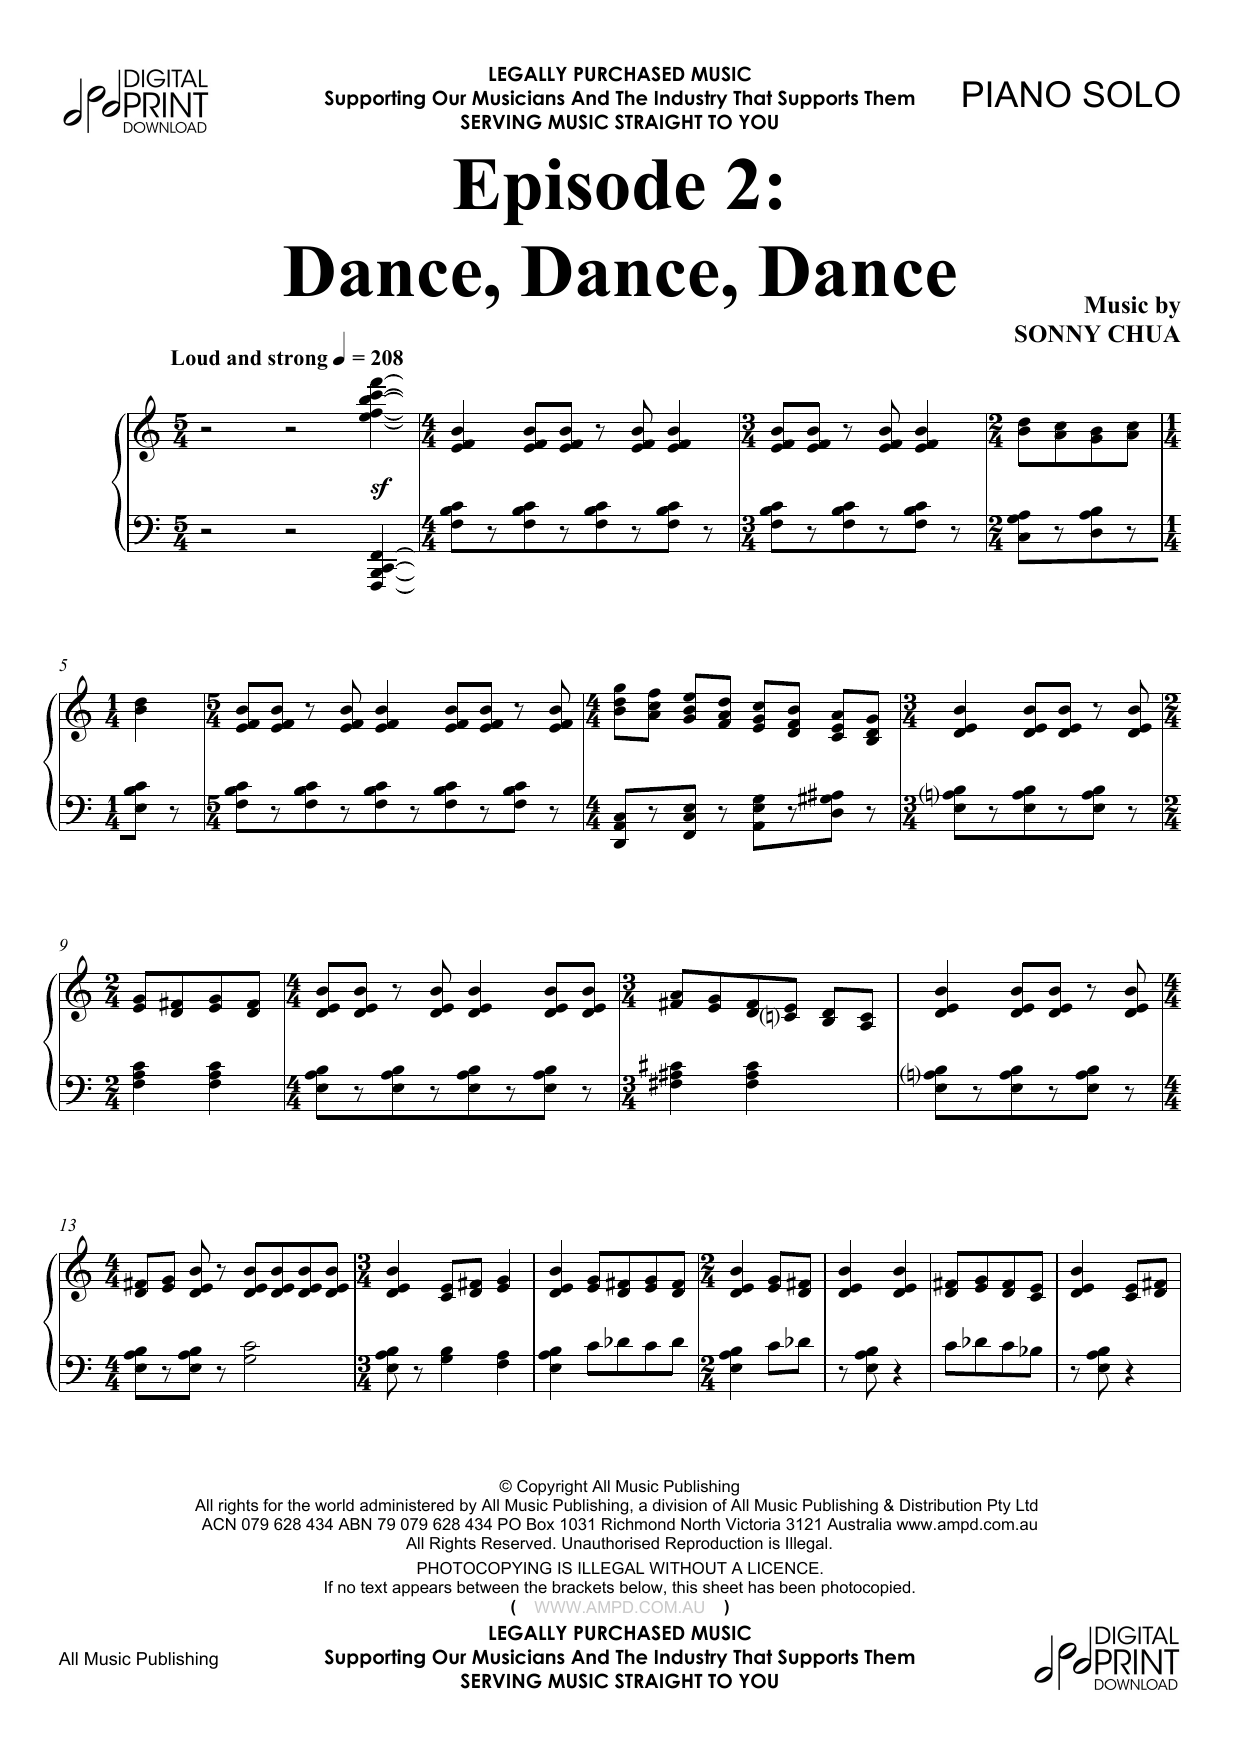 Episode 2 Dance, Dance, Dance (Piano Solo)